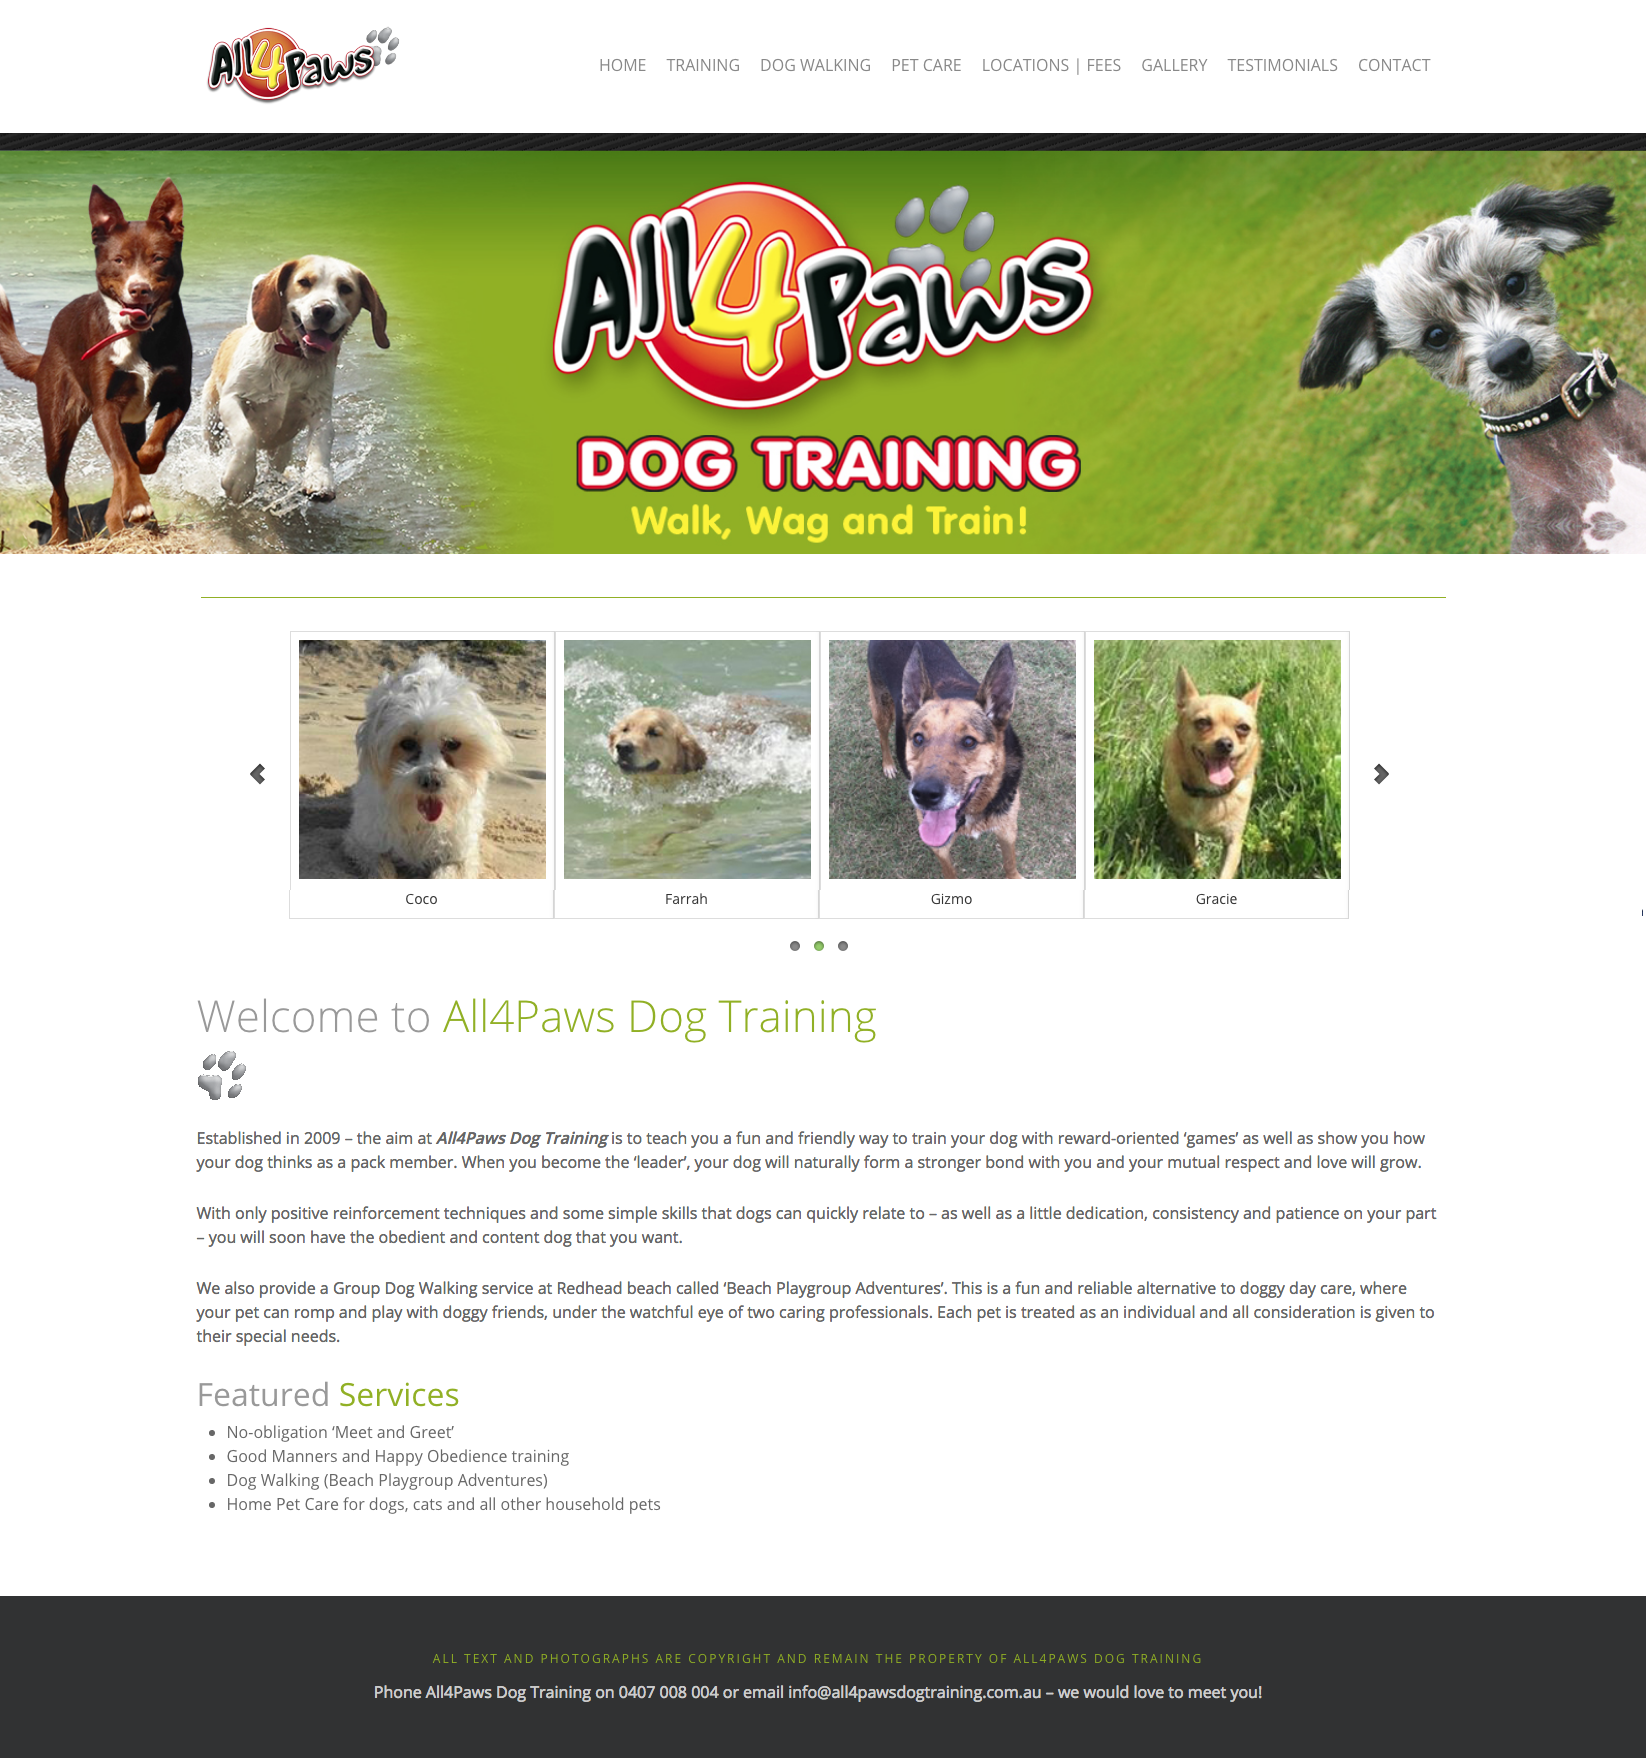 www.all4pawsdogtraining.com.au